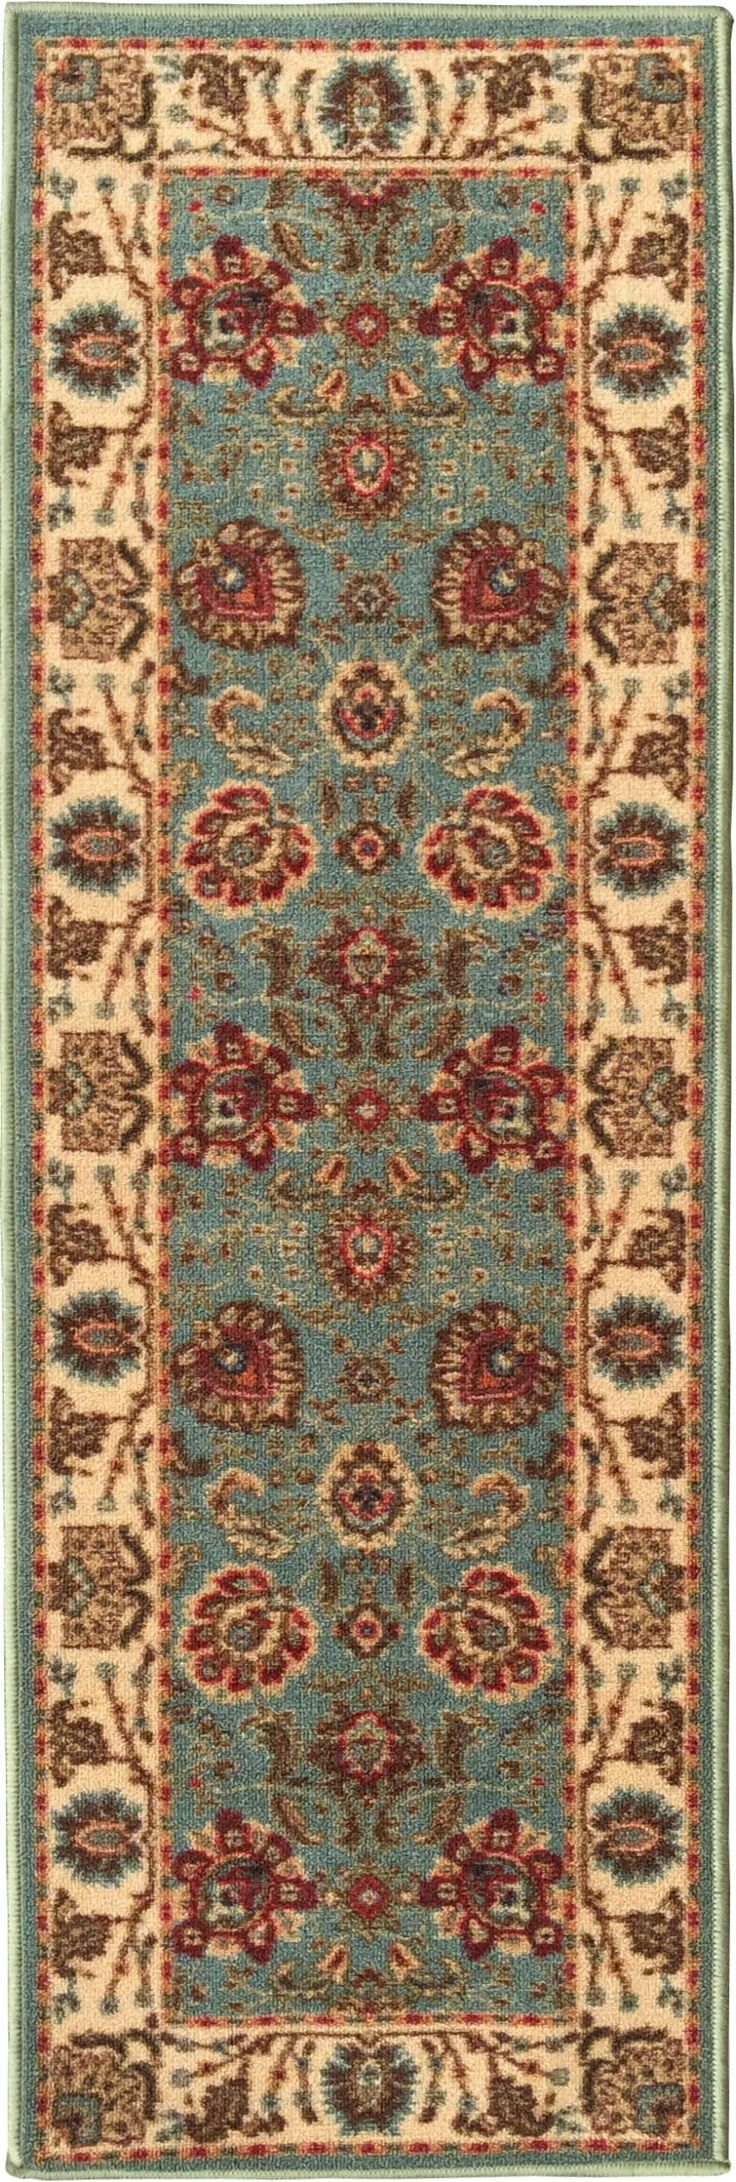 Ottomanson Otto Persian Style Rug Oriental Rugs Runner Rug With  Non SkidRubber Backing, 20